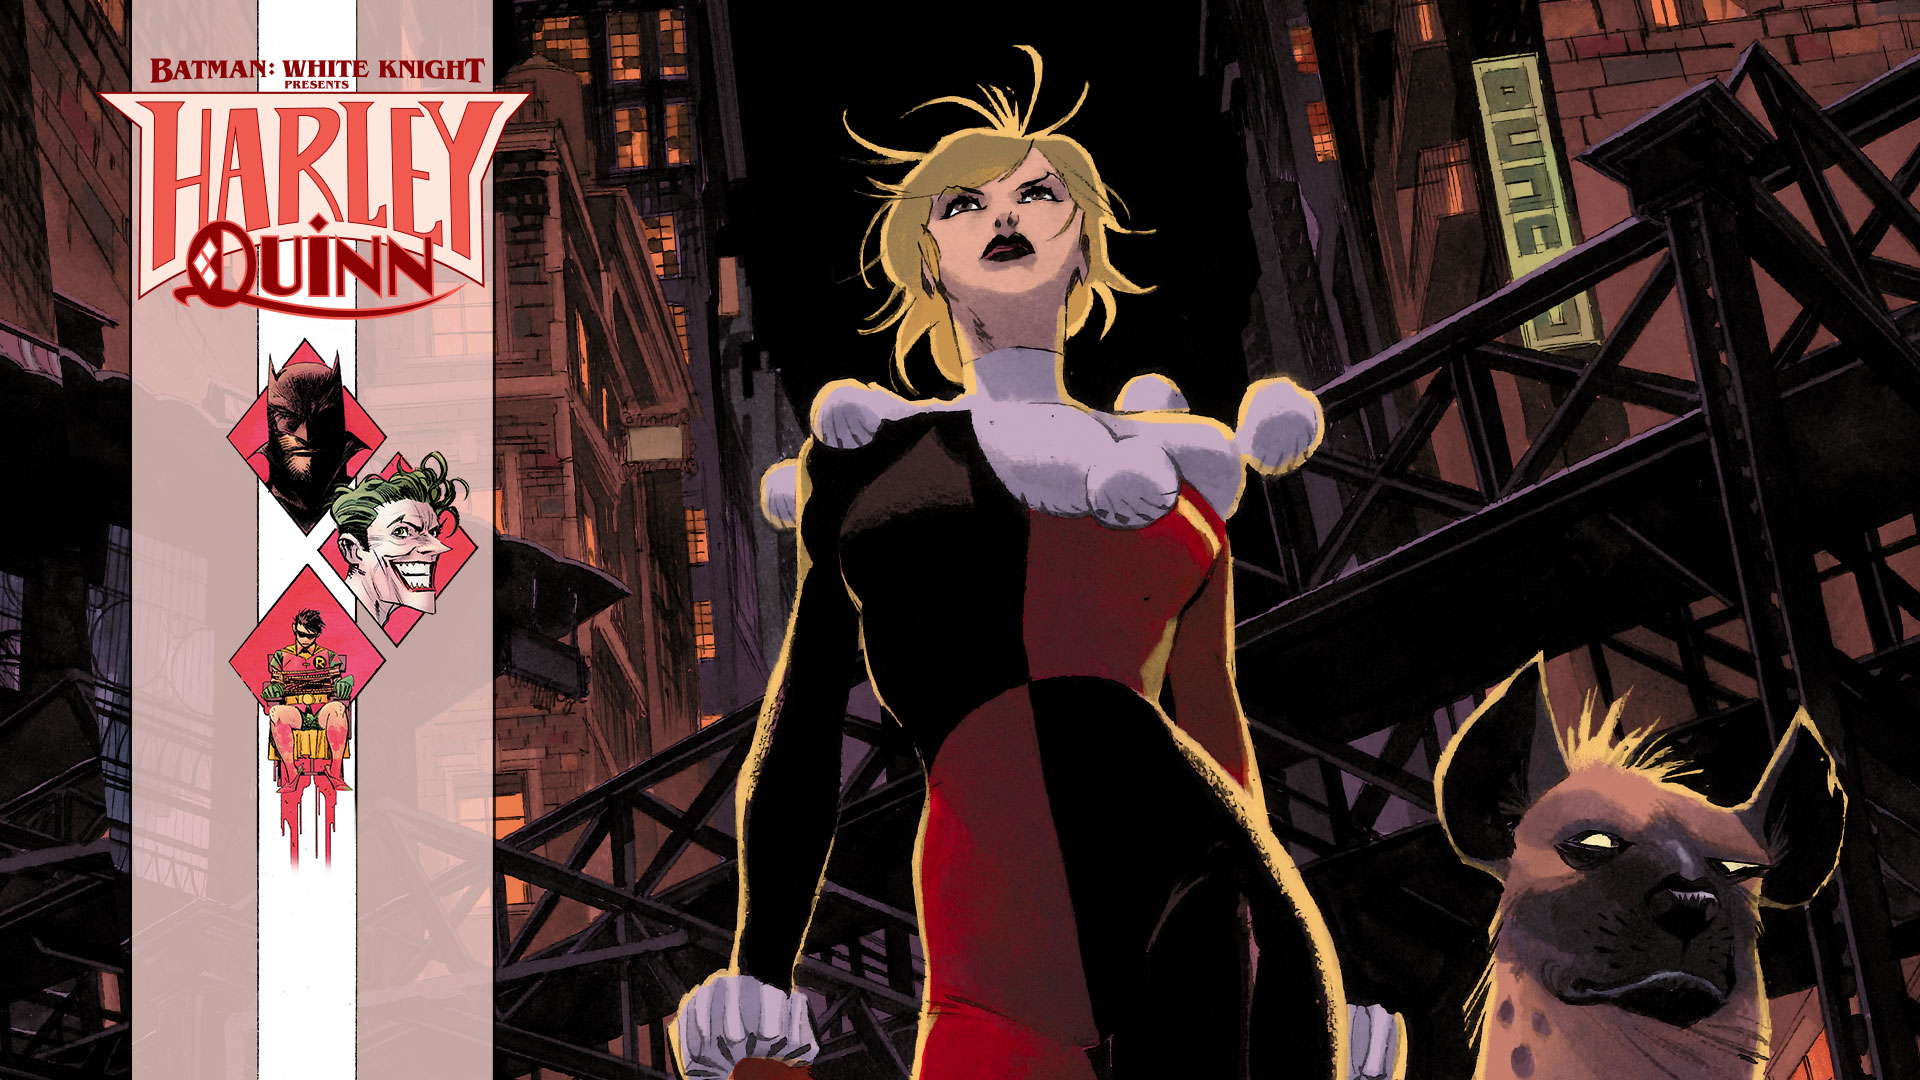 Batman: White Knight Puts Harley Quinn's Heart and Mind to the Test